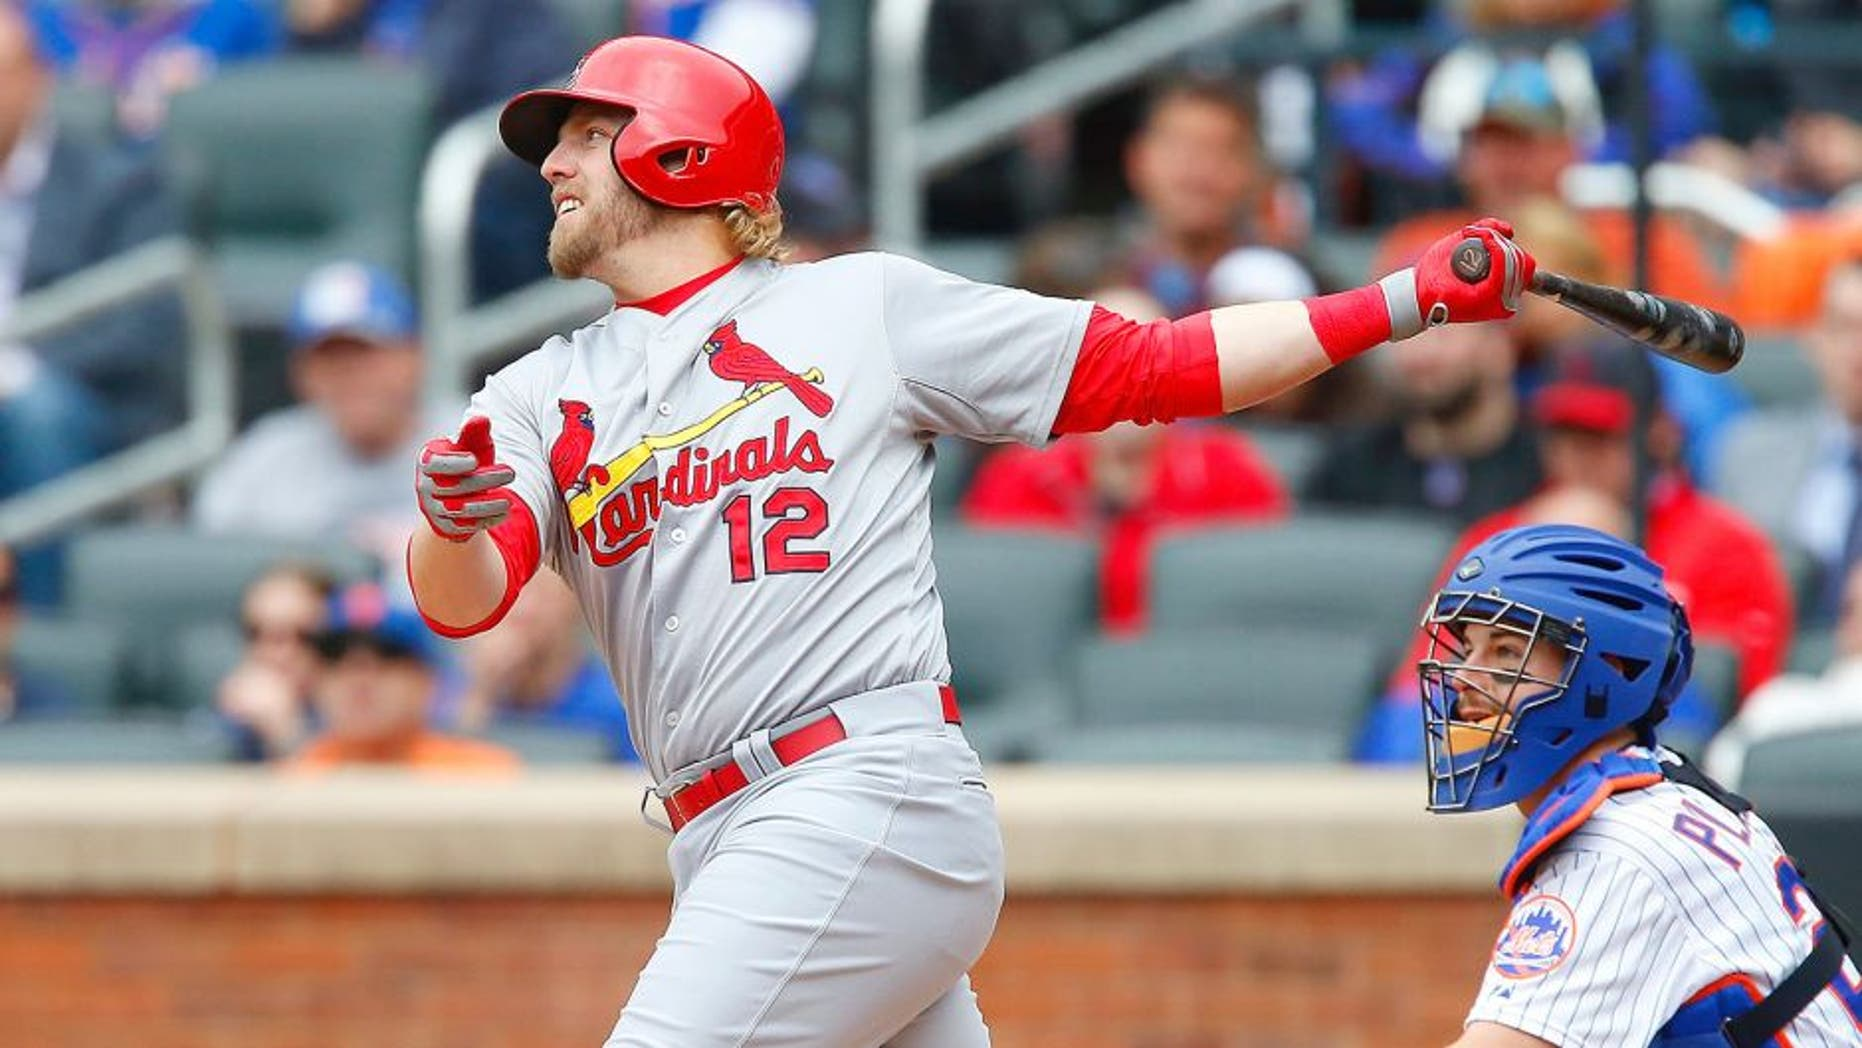 NEW YORK, NY - MAY 21: (NEW YORK DAILIES OUT) Mark Reynolds #12 of the St. Louis Cardinals in action against the New York Mets at Citi Field on May 21, 2015 in the Flushing neighborhood of the Queens borough of New York City. The Mets defeated the Cardinals 5-0. (Photo by Jim McIsaac/Getty Images)